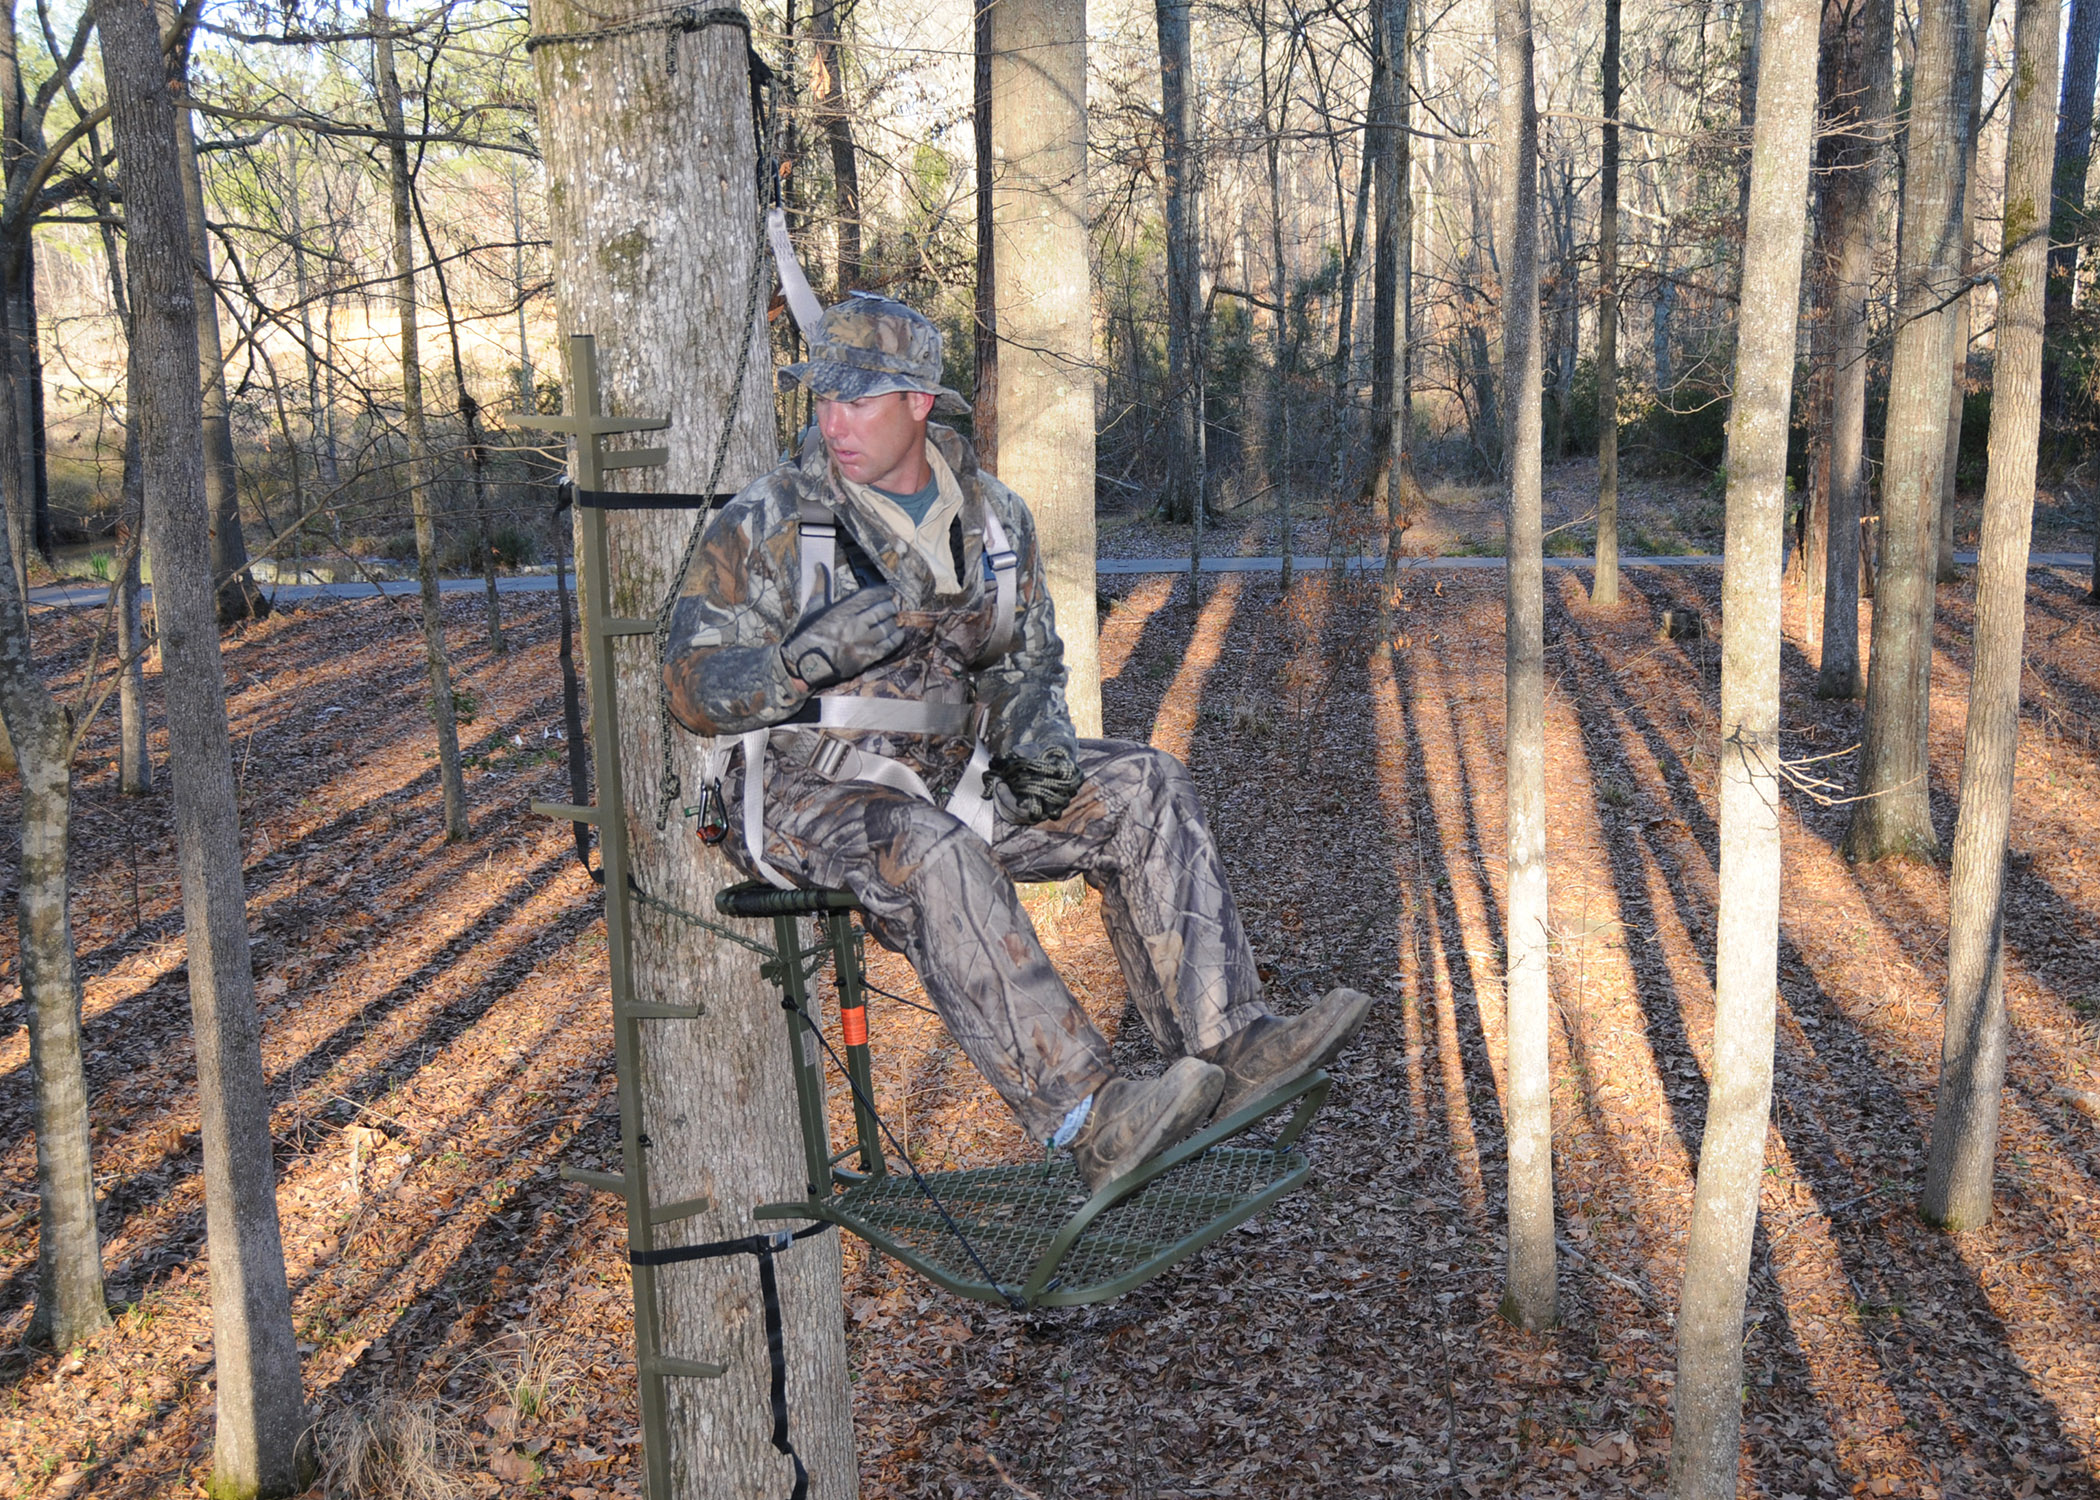 Use Tree Stands Safely For An Enjoyable Hunt